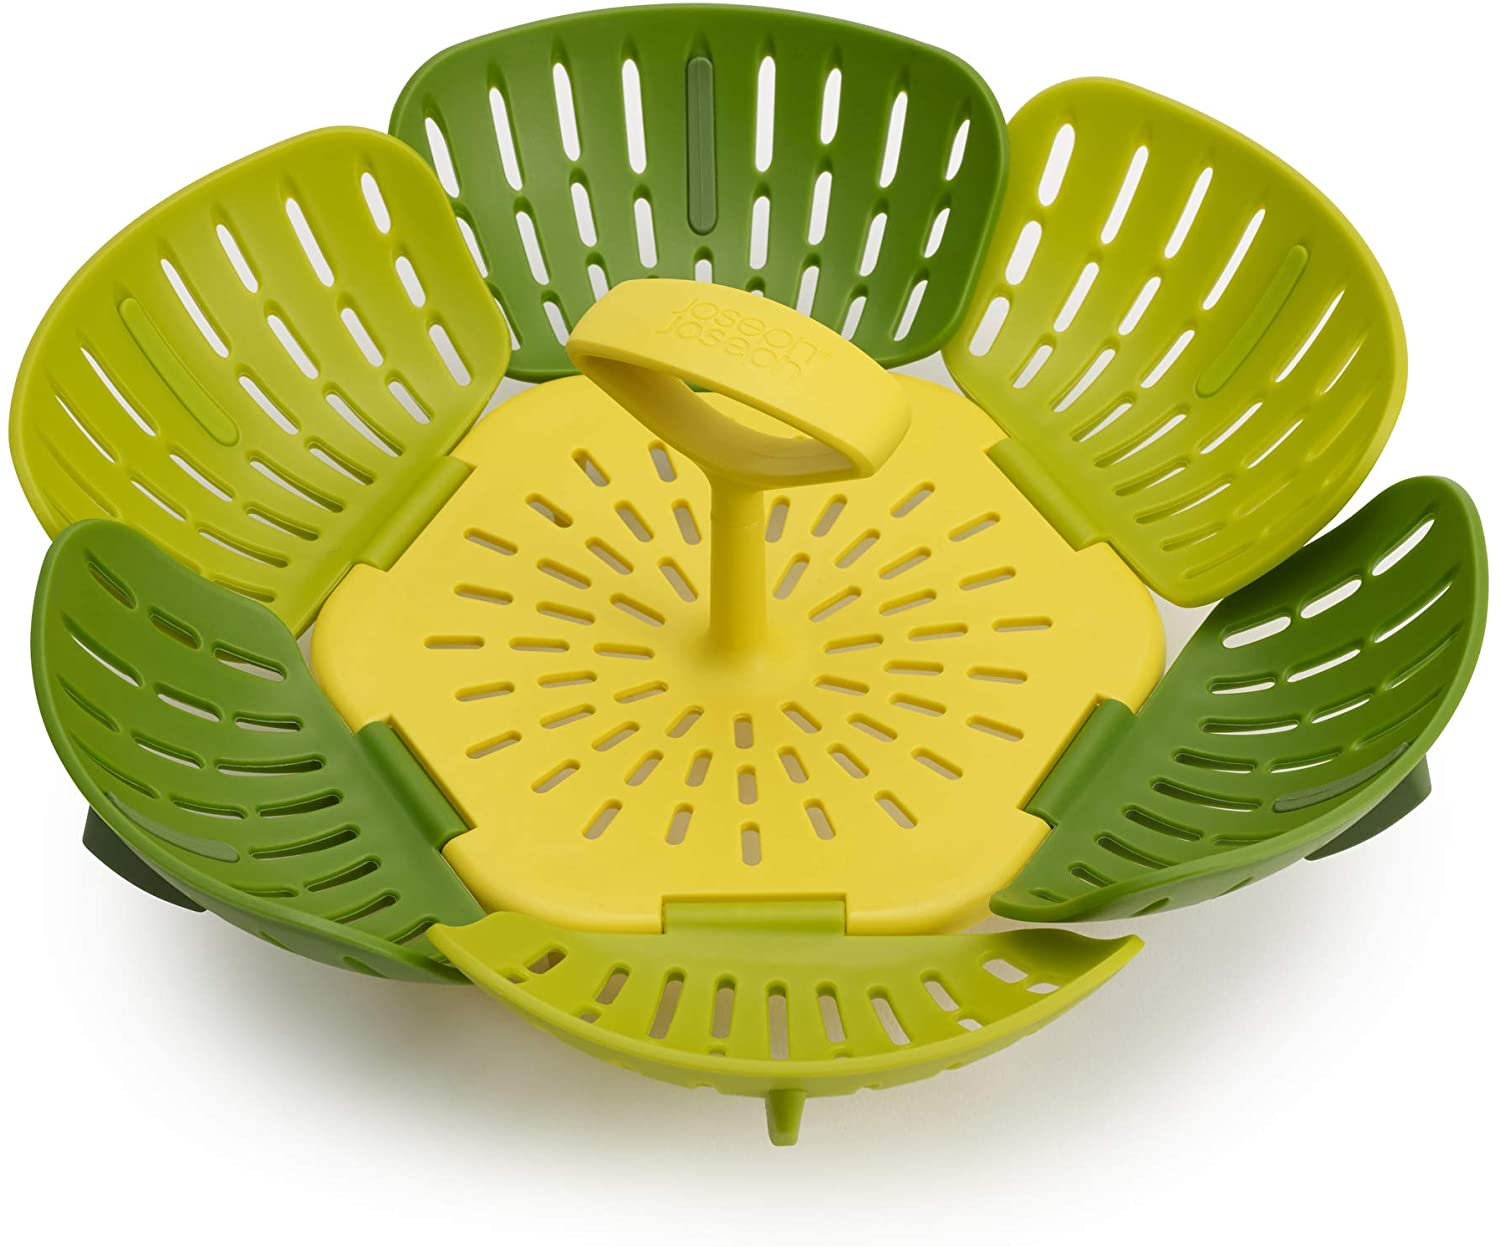 Joseph Joseph 45030 Bloom Steamer Basket Folding Non-Scratch BPA-Free Plastic and Silicone, Green